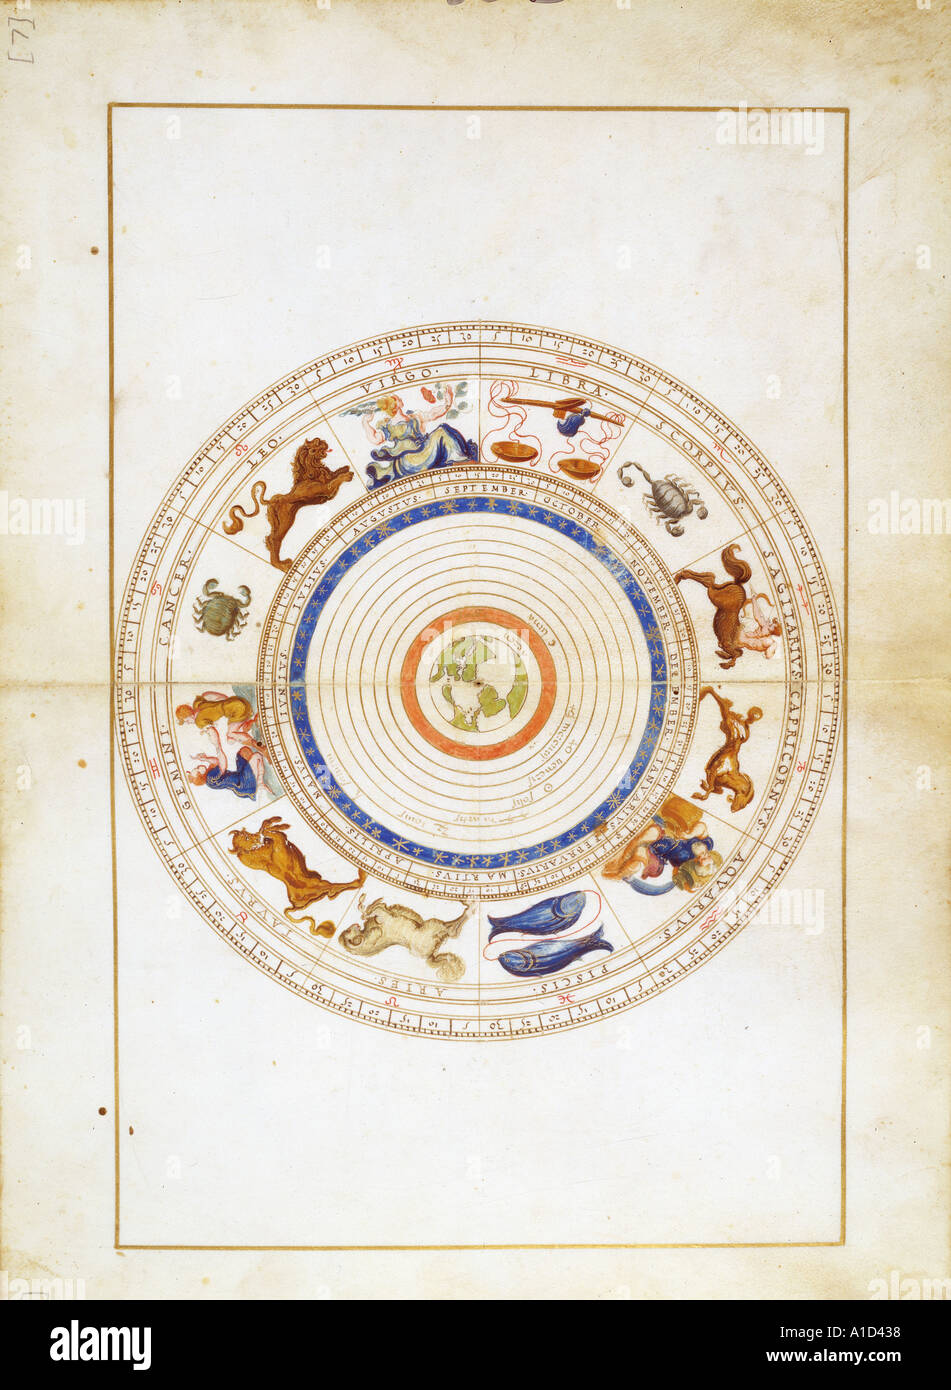 Signs of the Zodiac from Portolan Atlas of the World - Stock Image